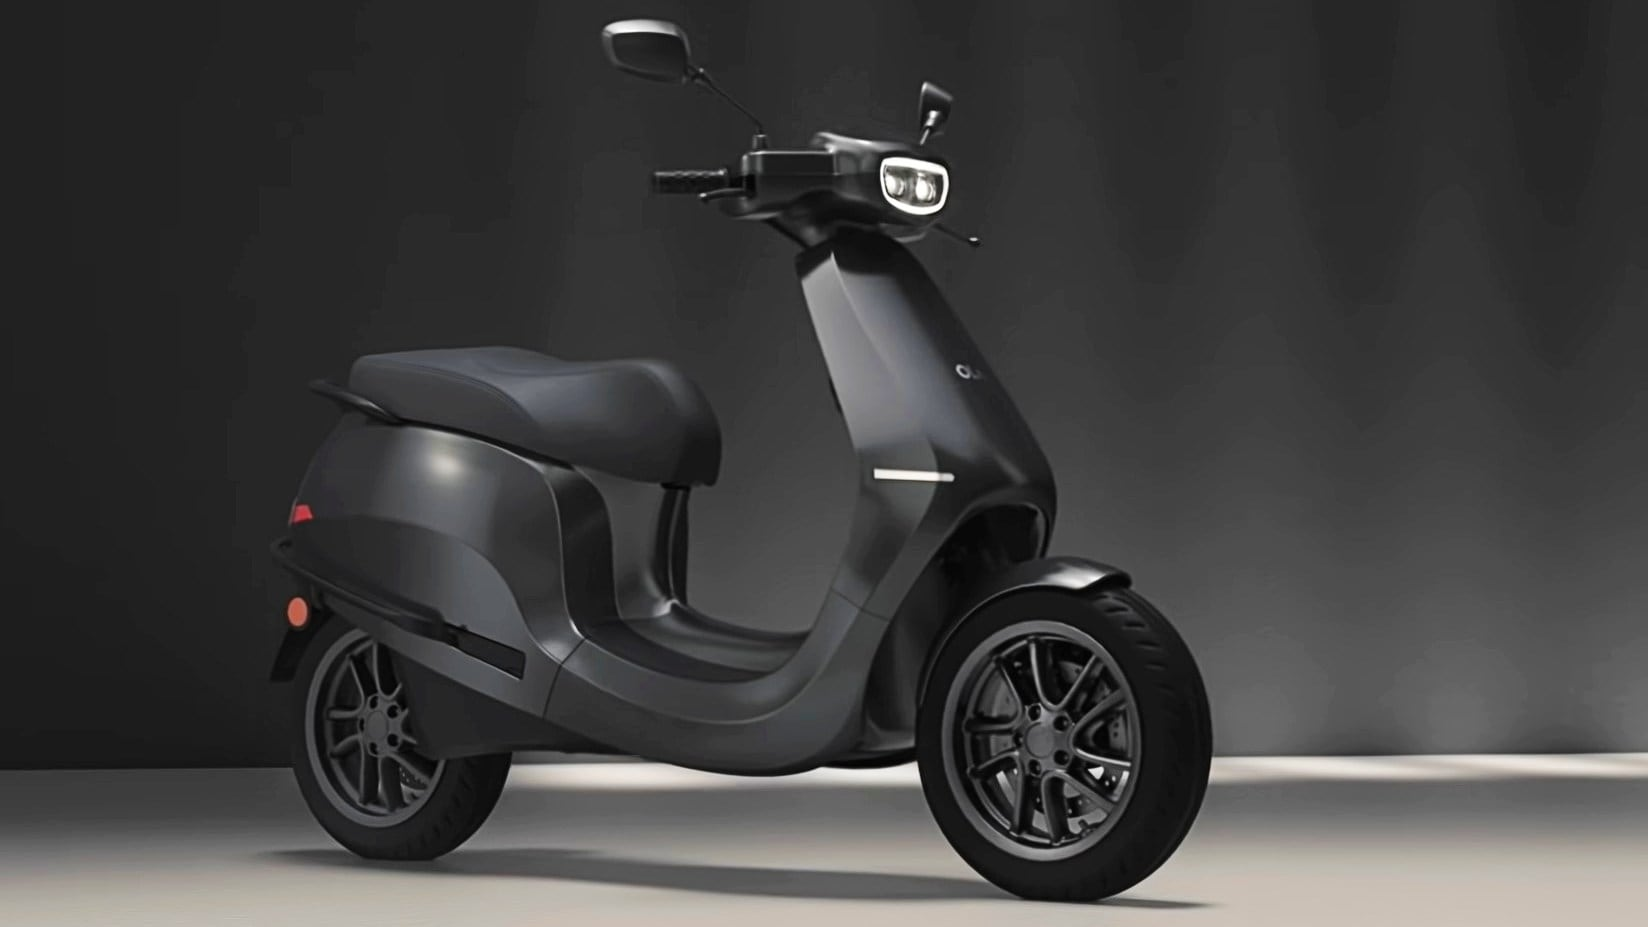 Ola Electric's S-Series S-scooter, sold directly to buyers, will be delivered home, confirms Bhavish Aggarwal-Technology News, Firstpost